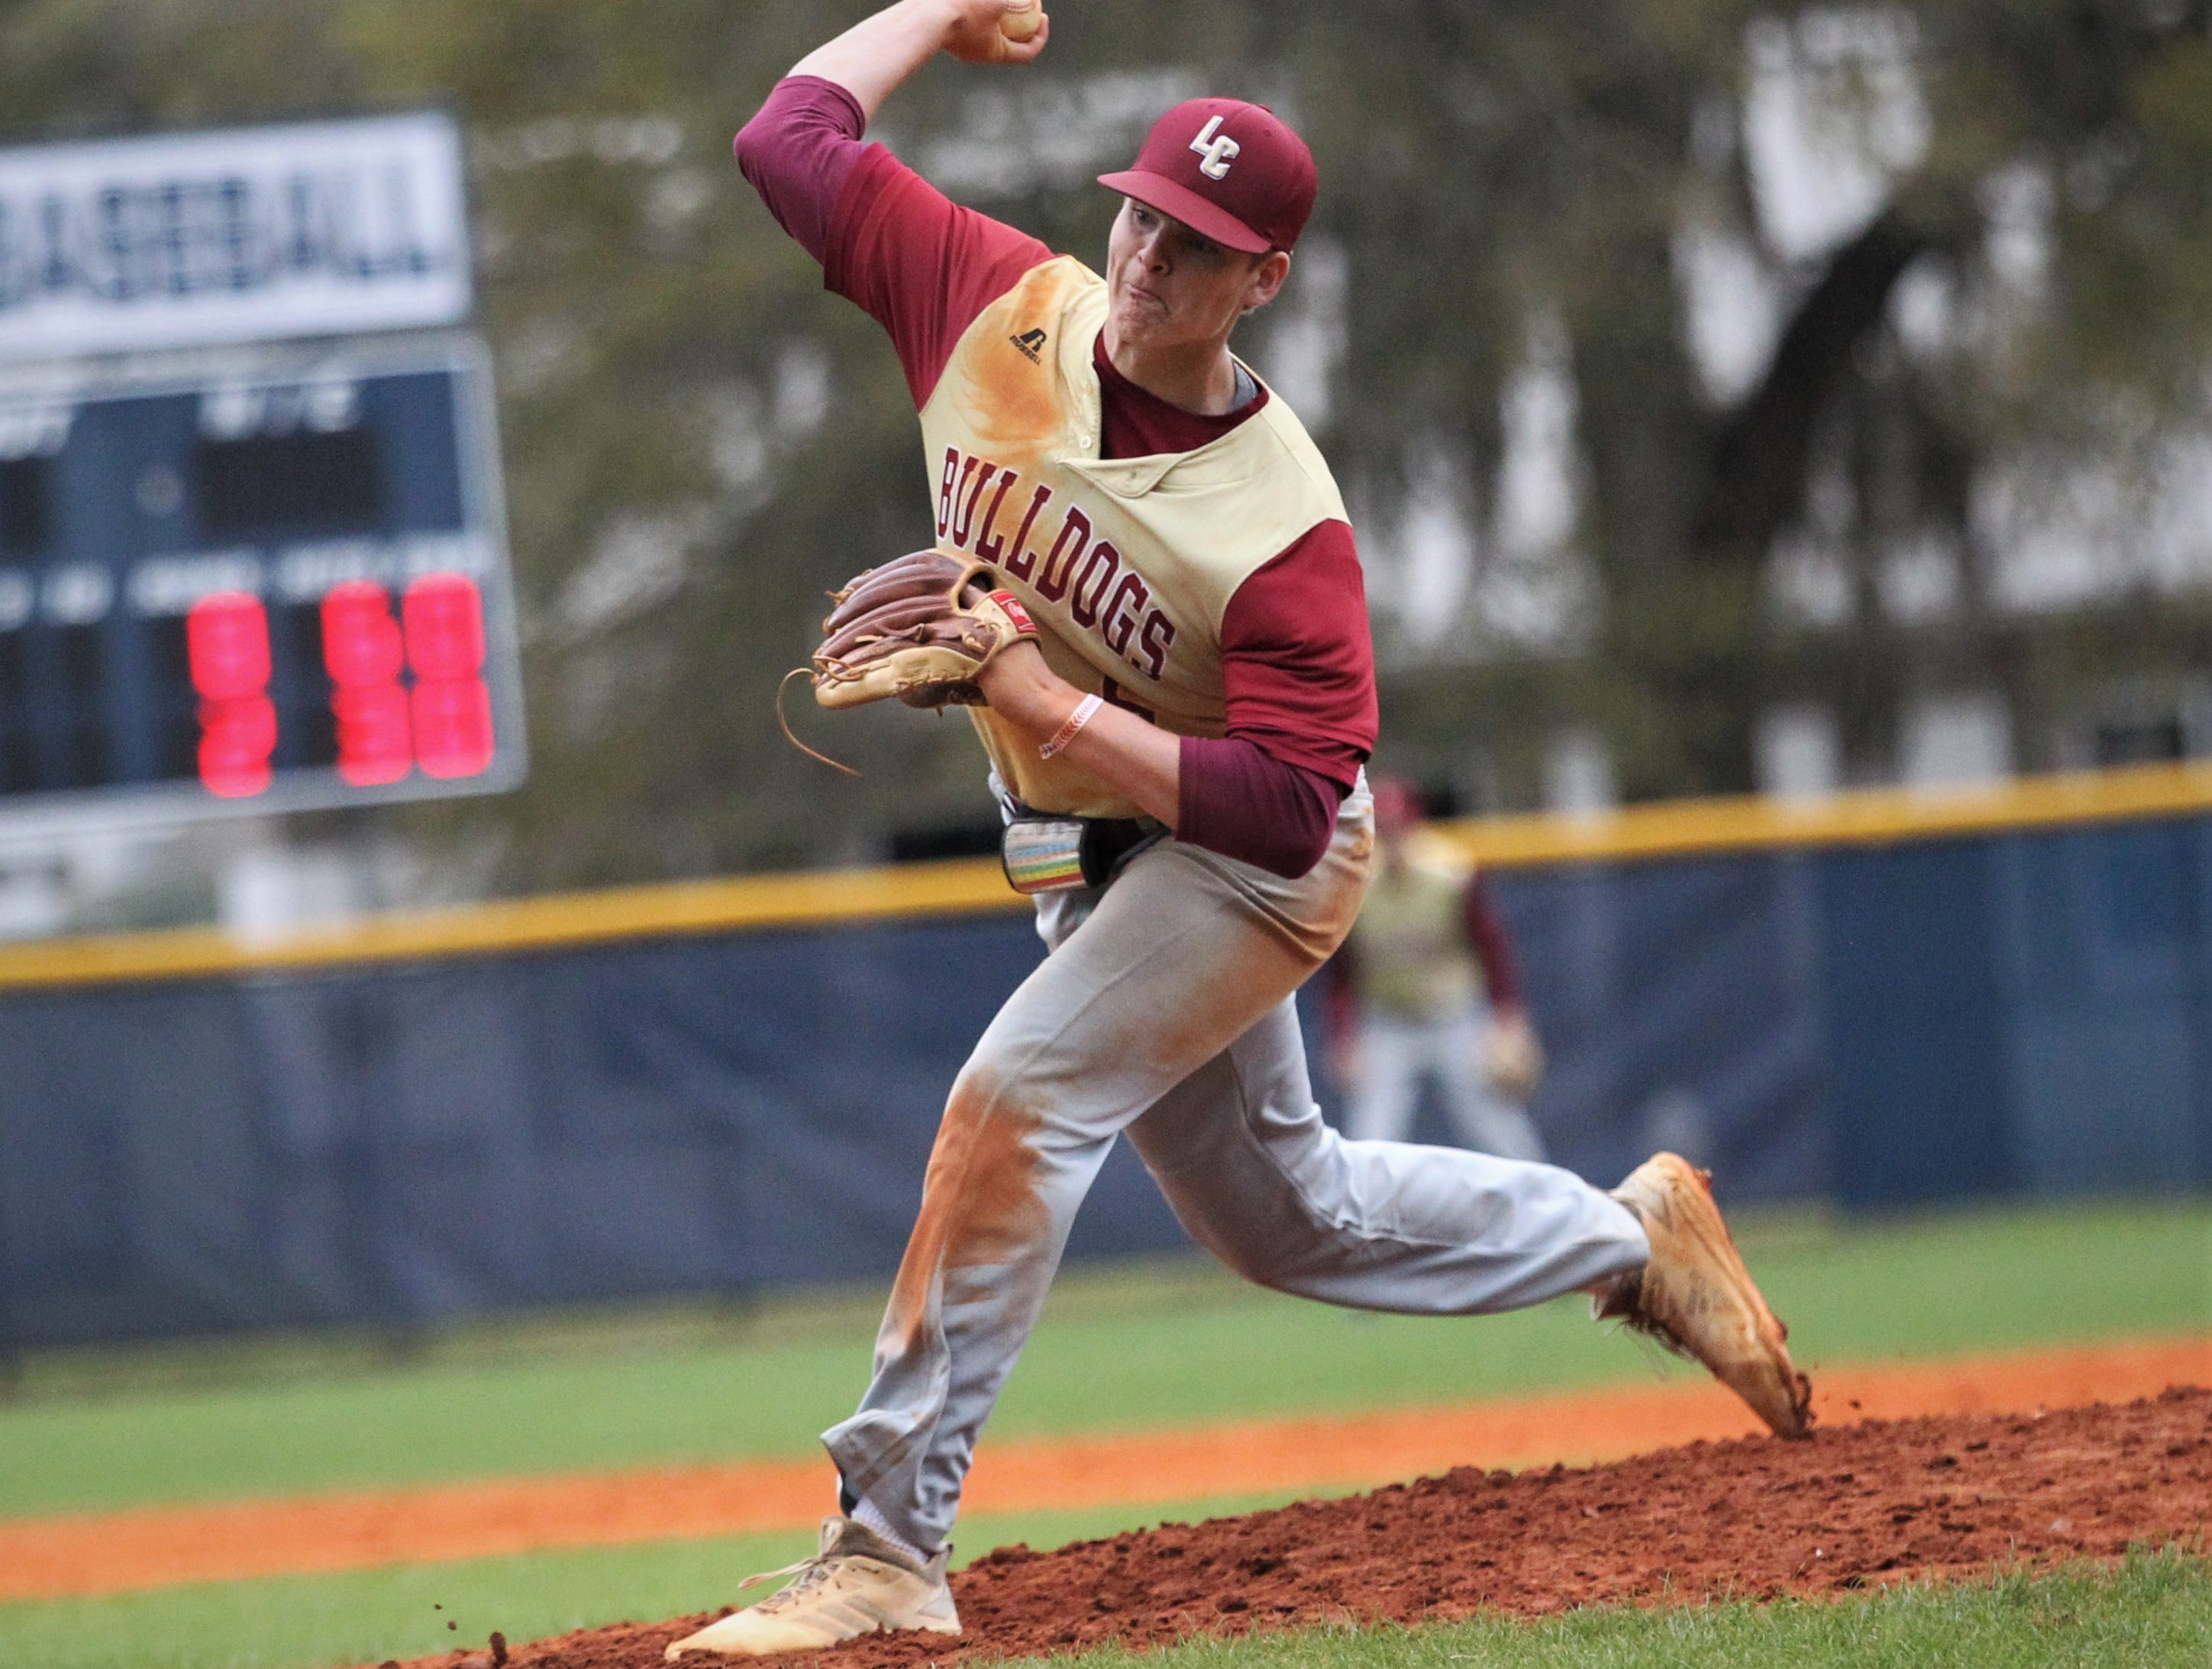 Liberty County's Brice Dillmore pitches in relief as Liberty County's baseball team went on the road to beat Maclay 8-2 on Saturday, March 16, 2019. The Bulldogs played their first game following their head coach Corey Crum's tragic death six days ago.